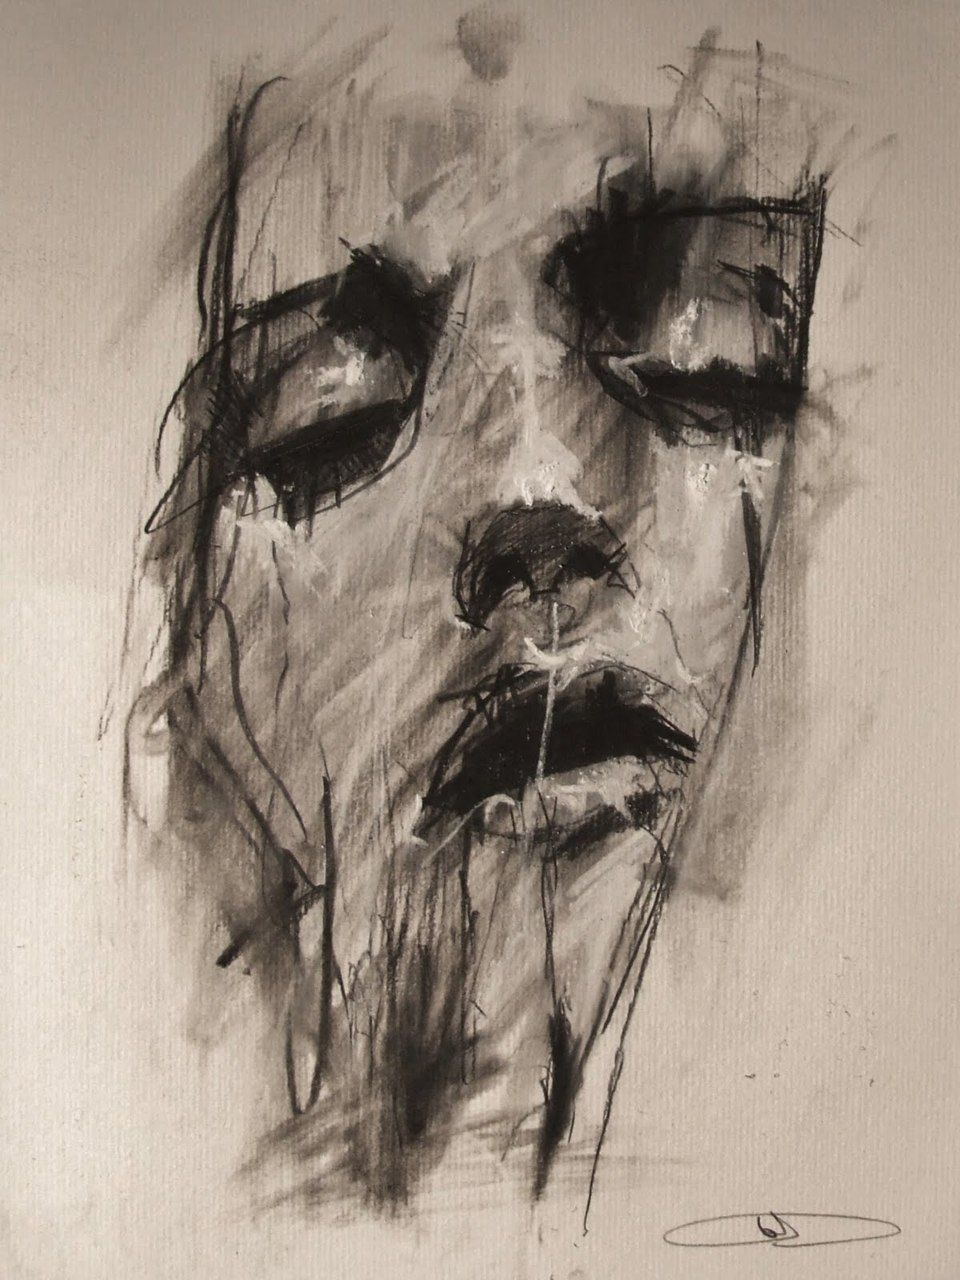 """""""Willful Self-Deception 3"""" byGuy Denning, 24 x 32cm, conte and chalk on paper"""